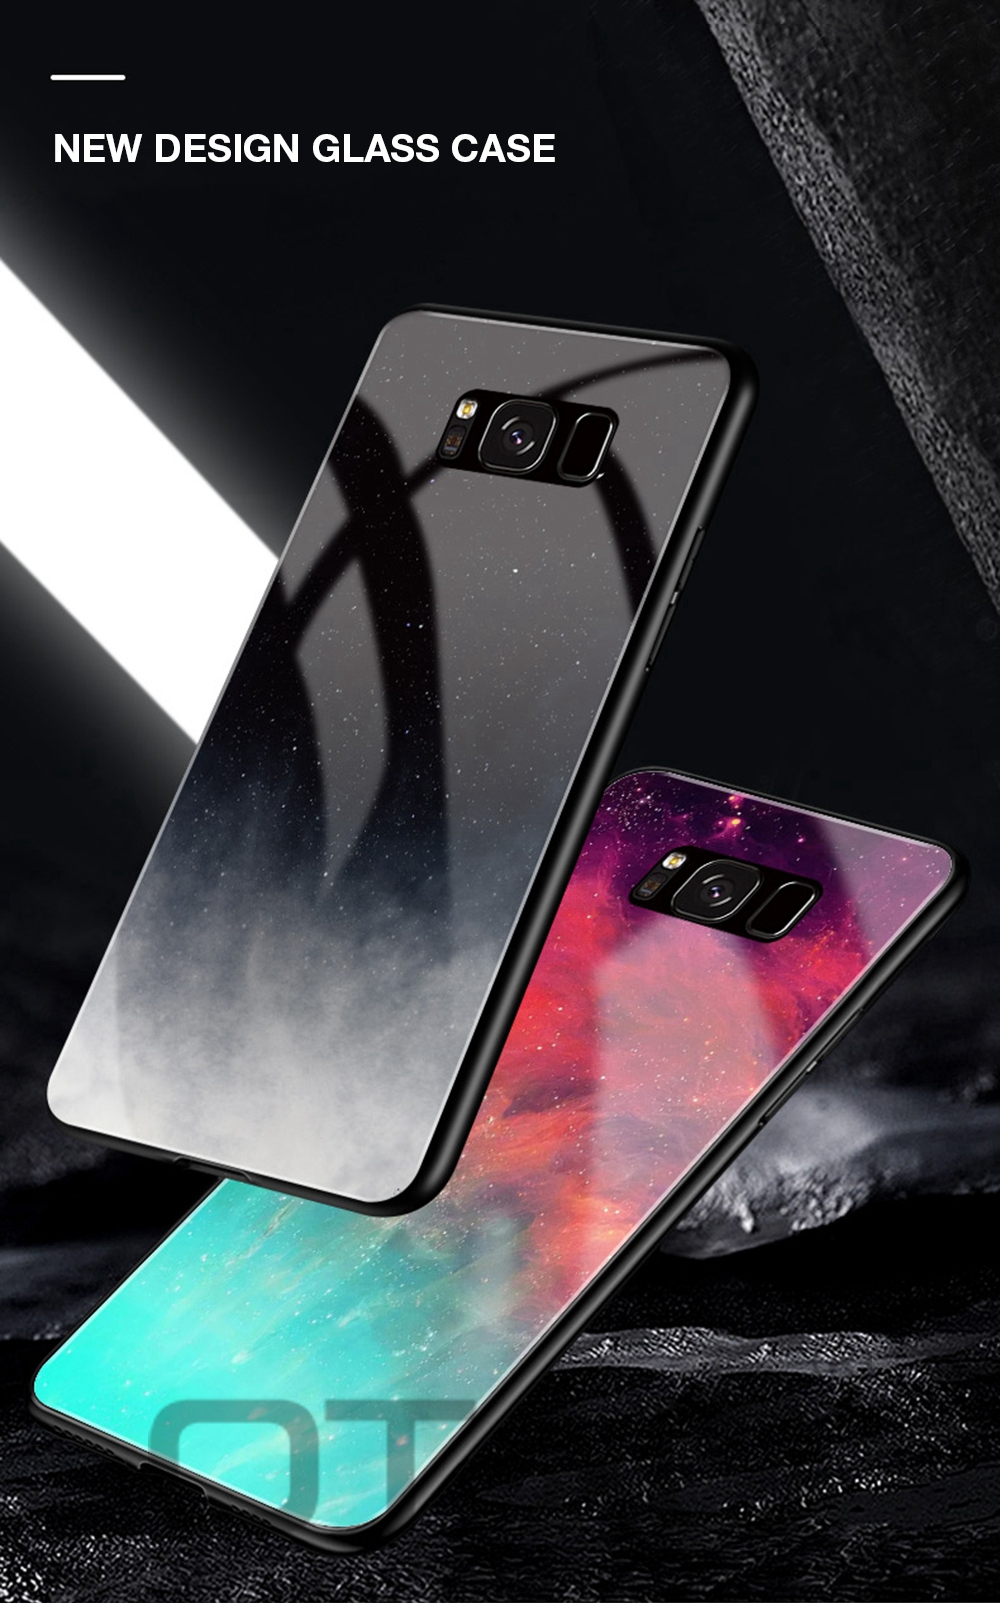 iStylishmall - Starry Sky Tempered Glass Case For Samsung Galaxy S9 S8 Plus  Note 8 9 S7 Edge